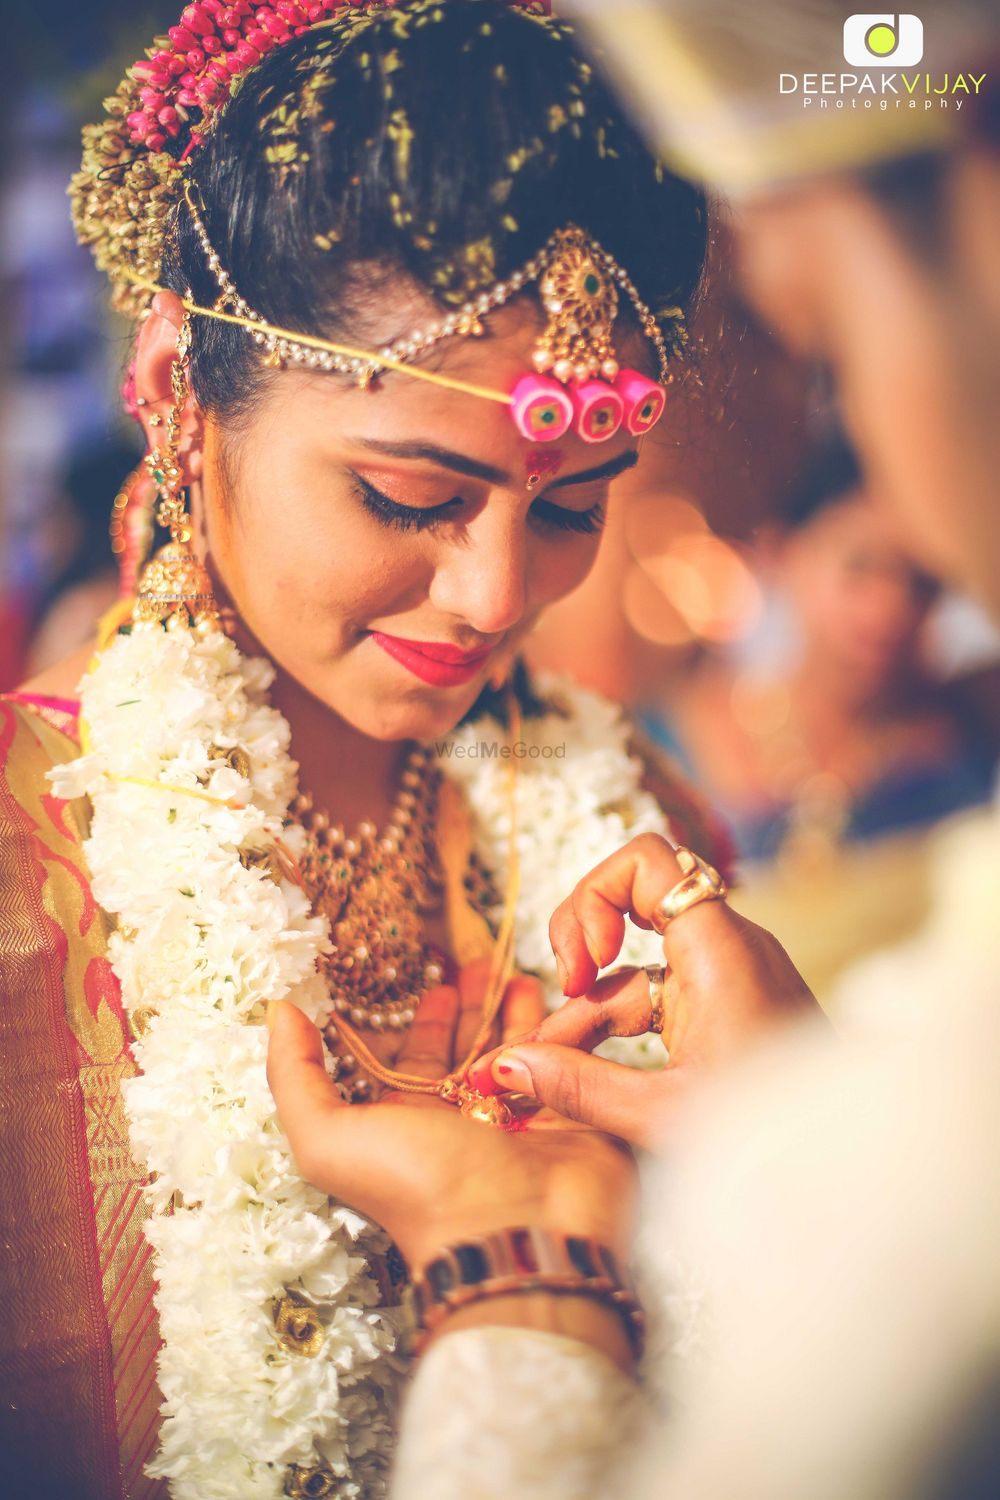 Photo From Reka + Gaurav - By Deepak Vijay Photography